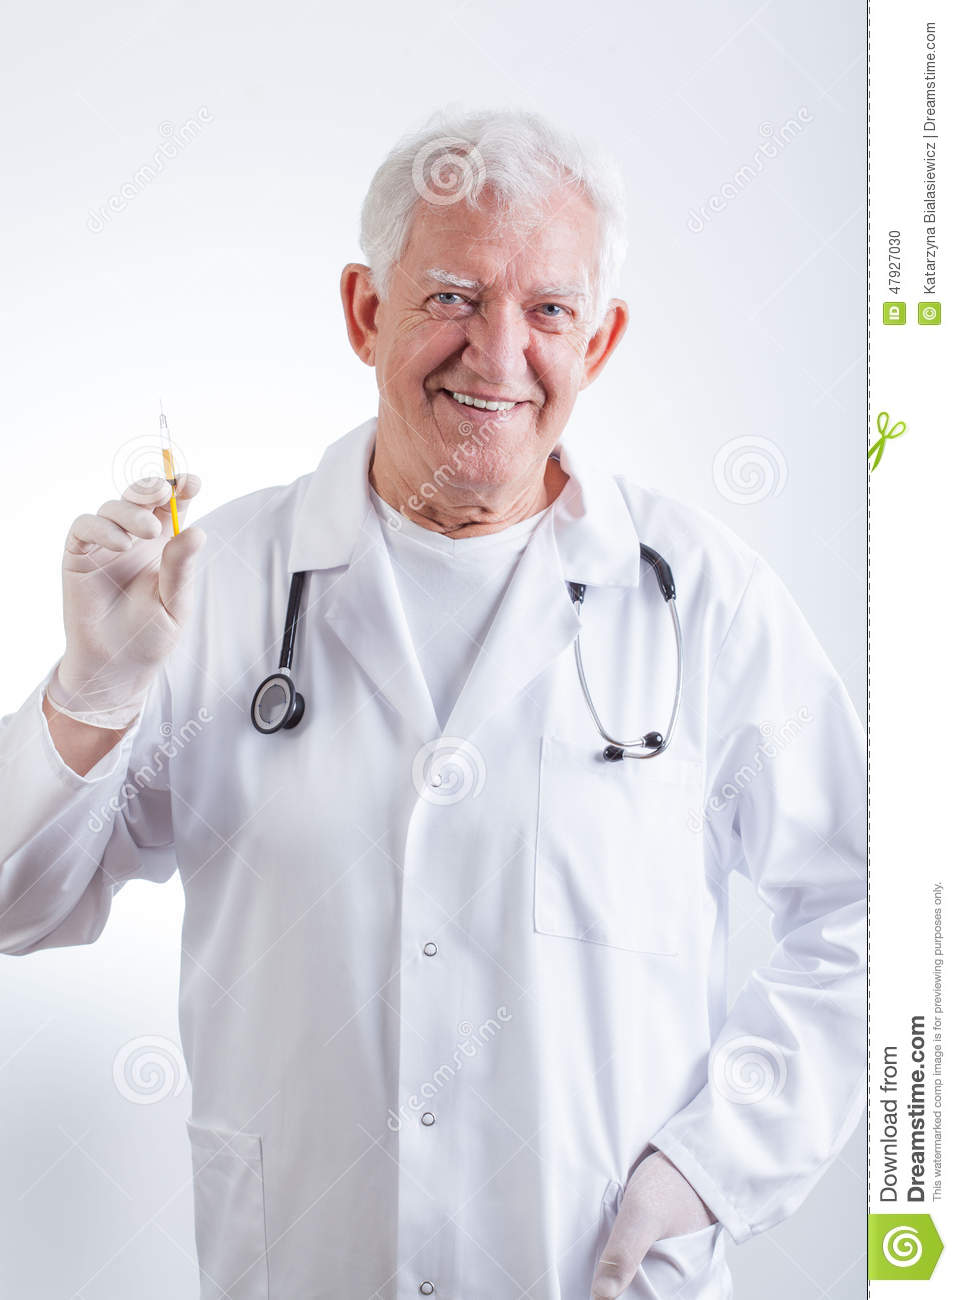 Male Doctor Stock Photo Image 47927030